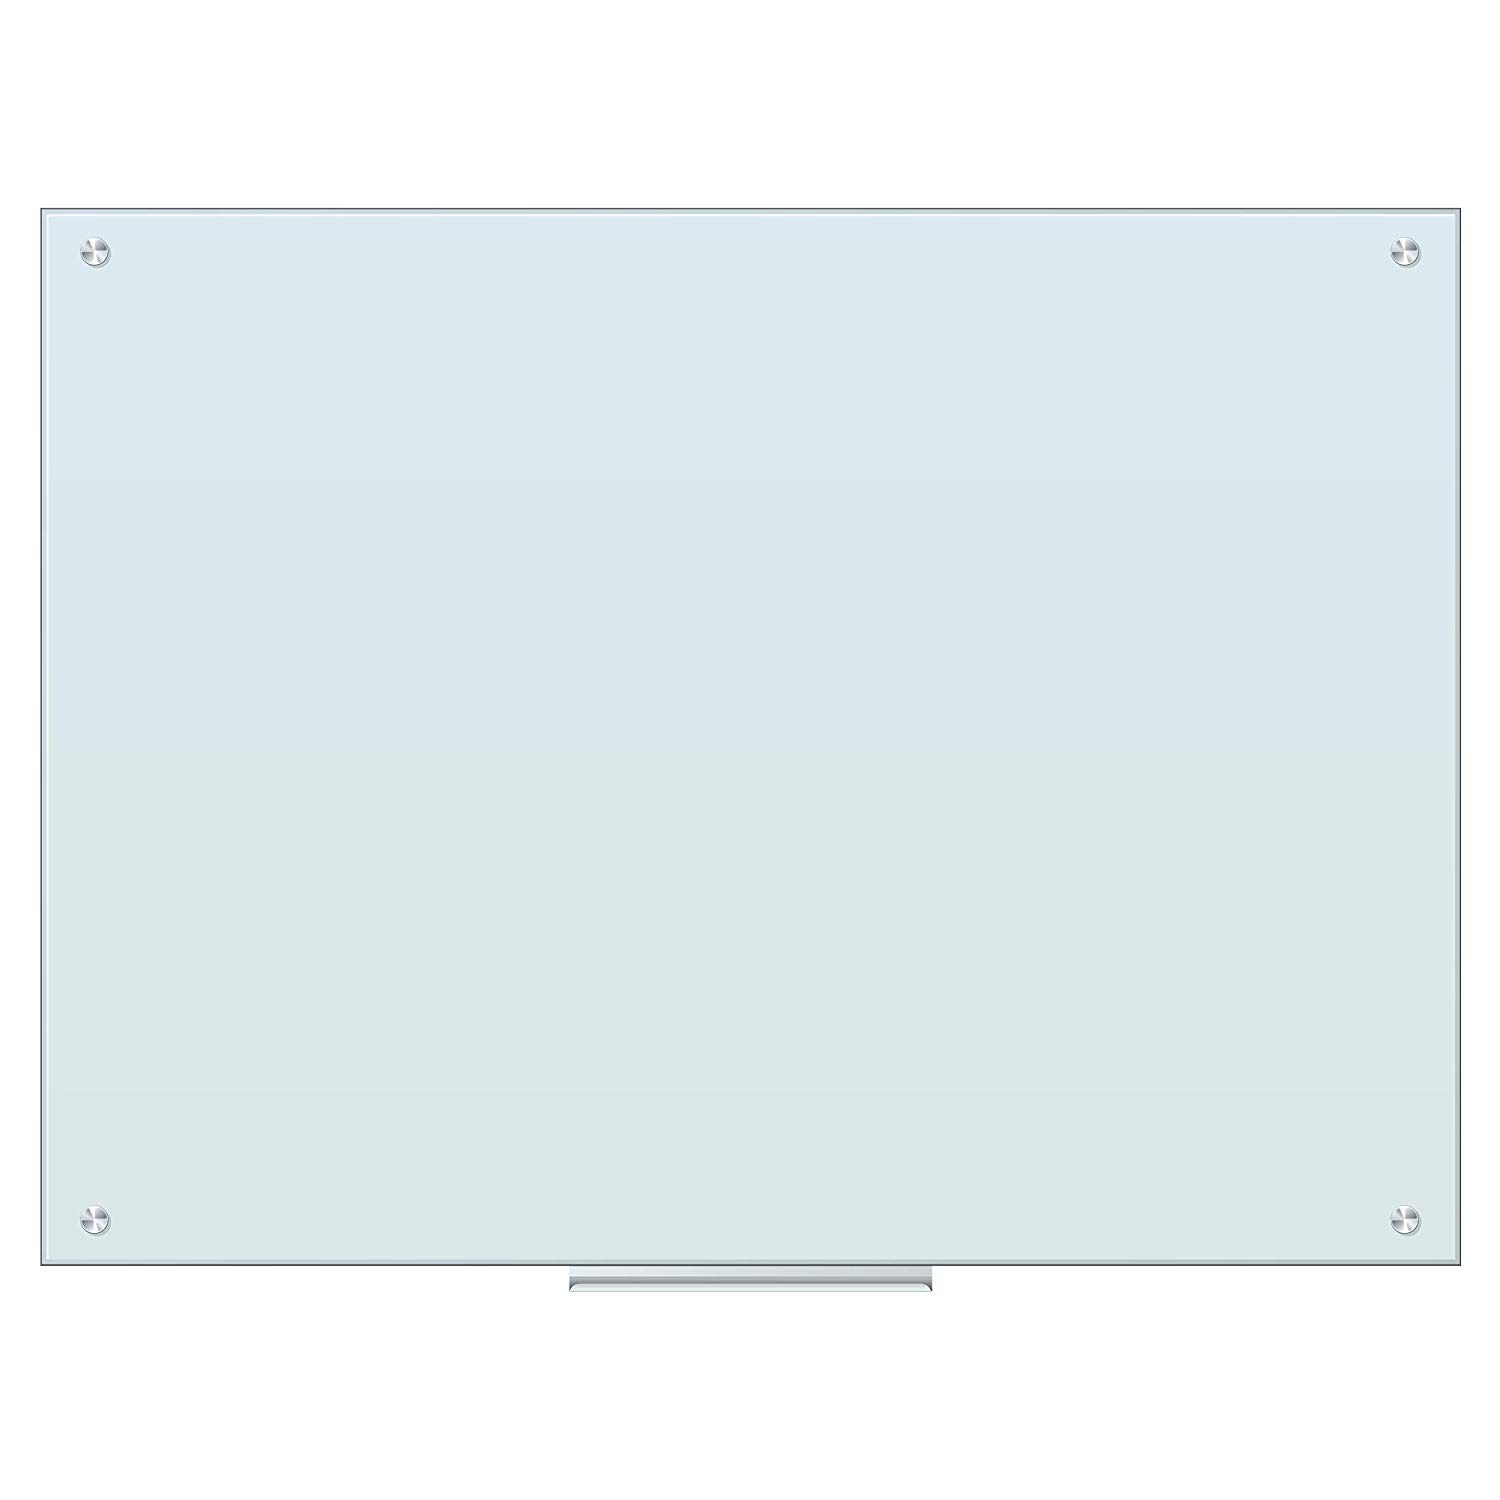 REINDEAR Frameless Magnetic Glass Dry Erase Board (48 x 36 Inches) by REINDEAR